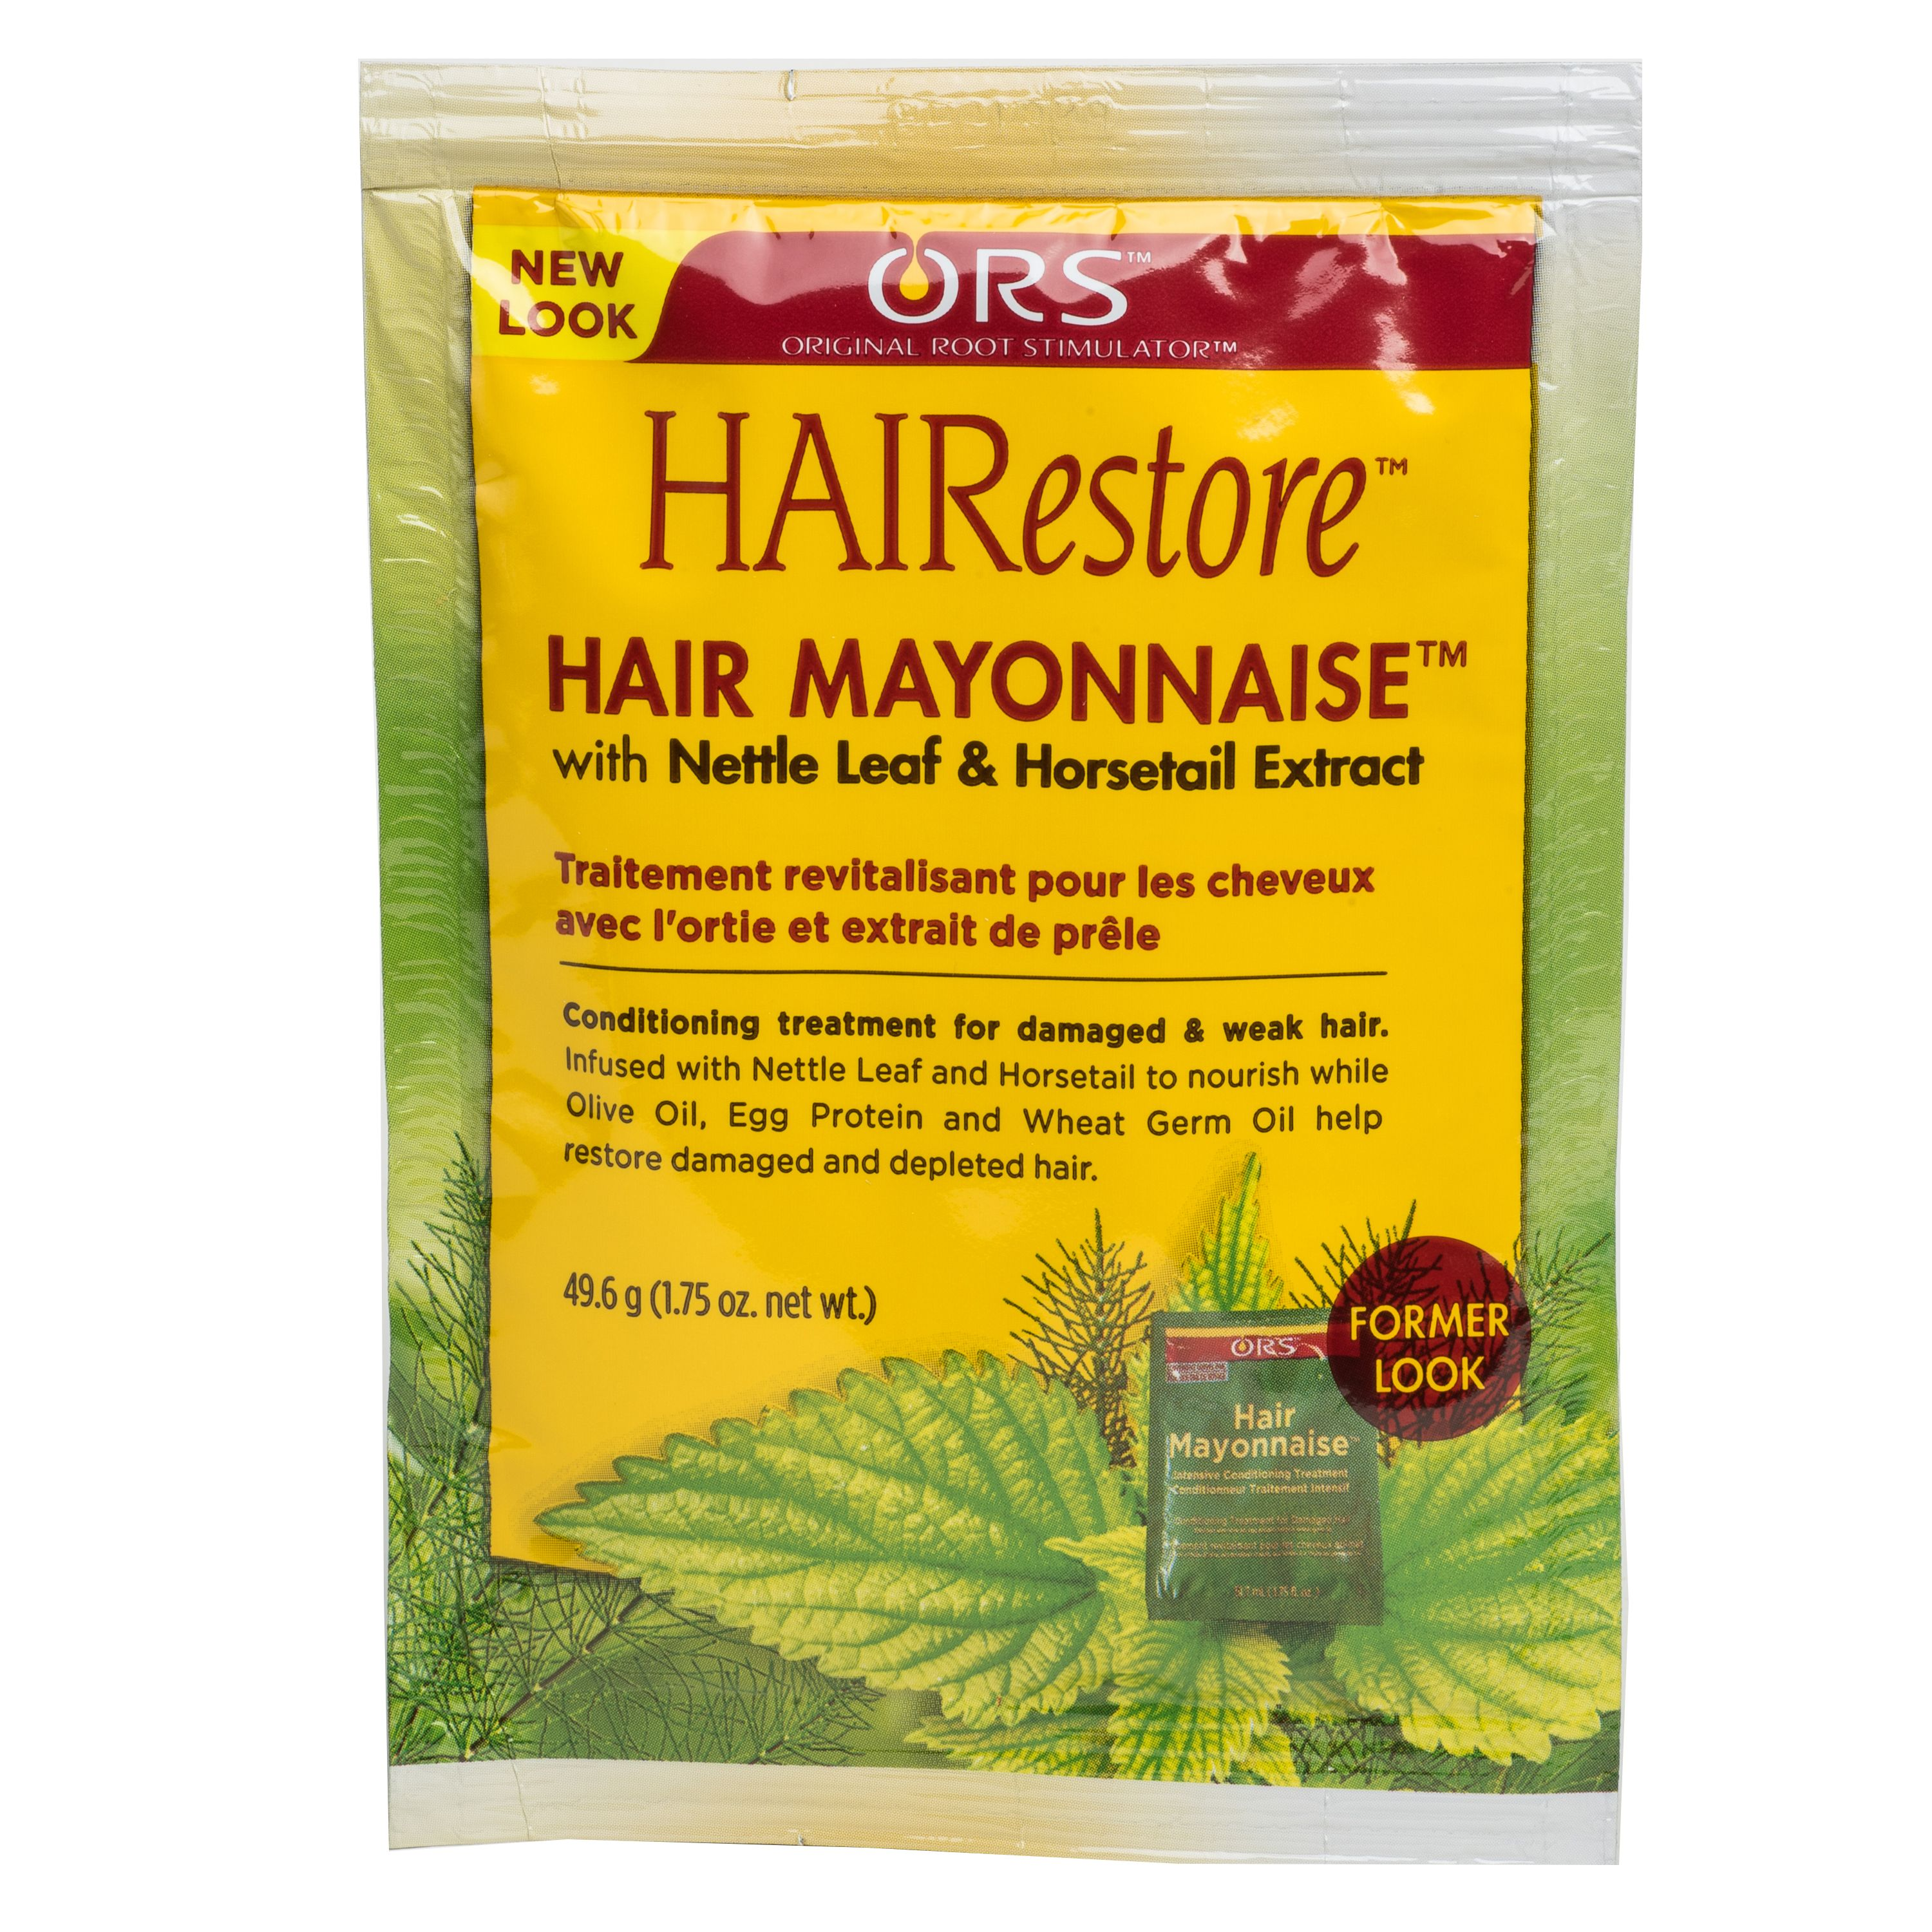 ORS HAIRestore Hair Mayonnaise with Nettle Leaf & Horsetail Extract Packet 1.75 oz